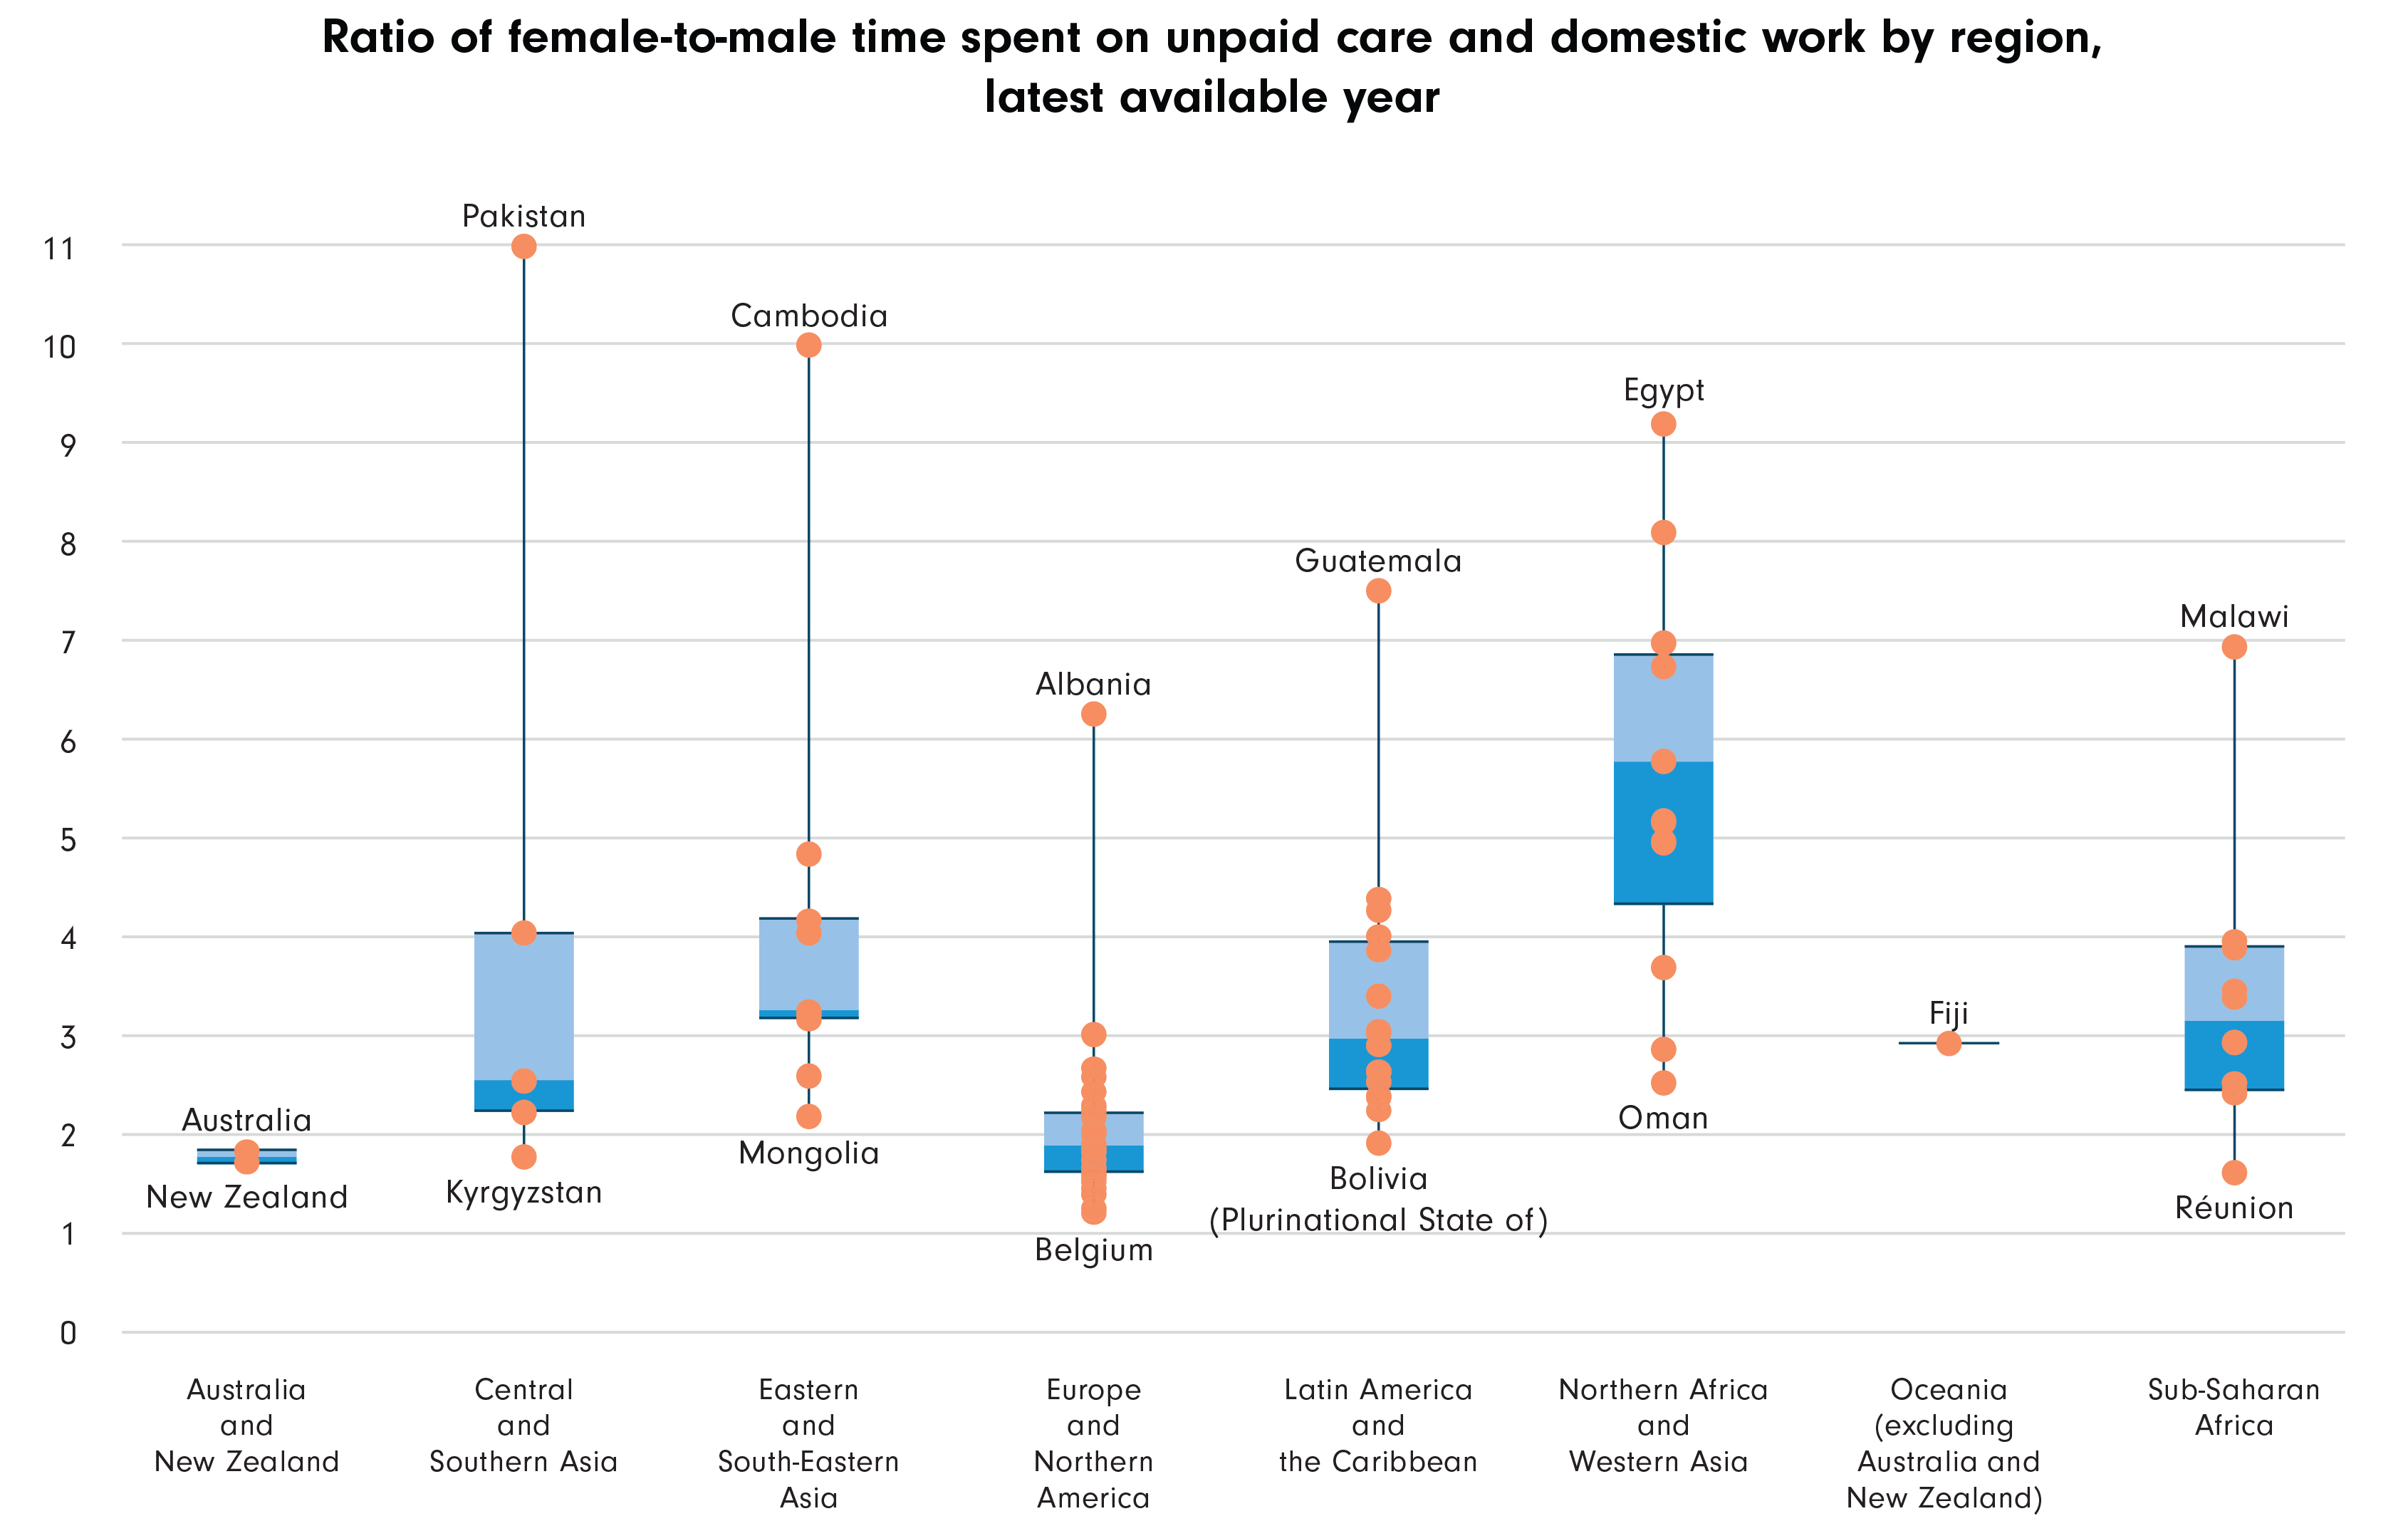 Ratio of male to female time spent on unpaid care and domestic work, by region